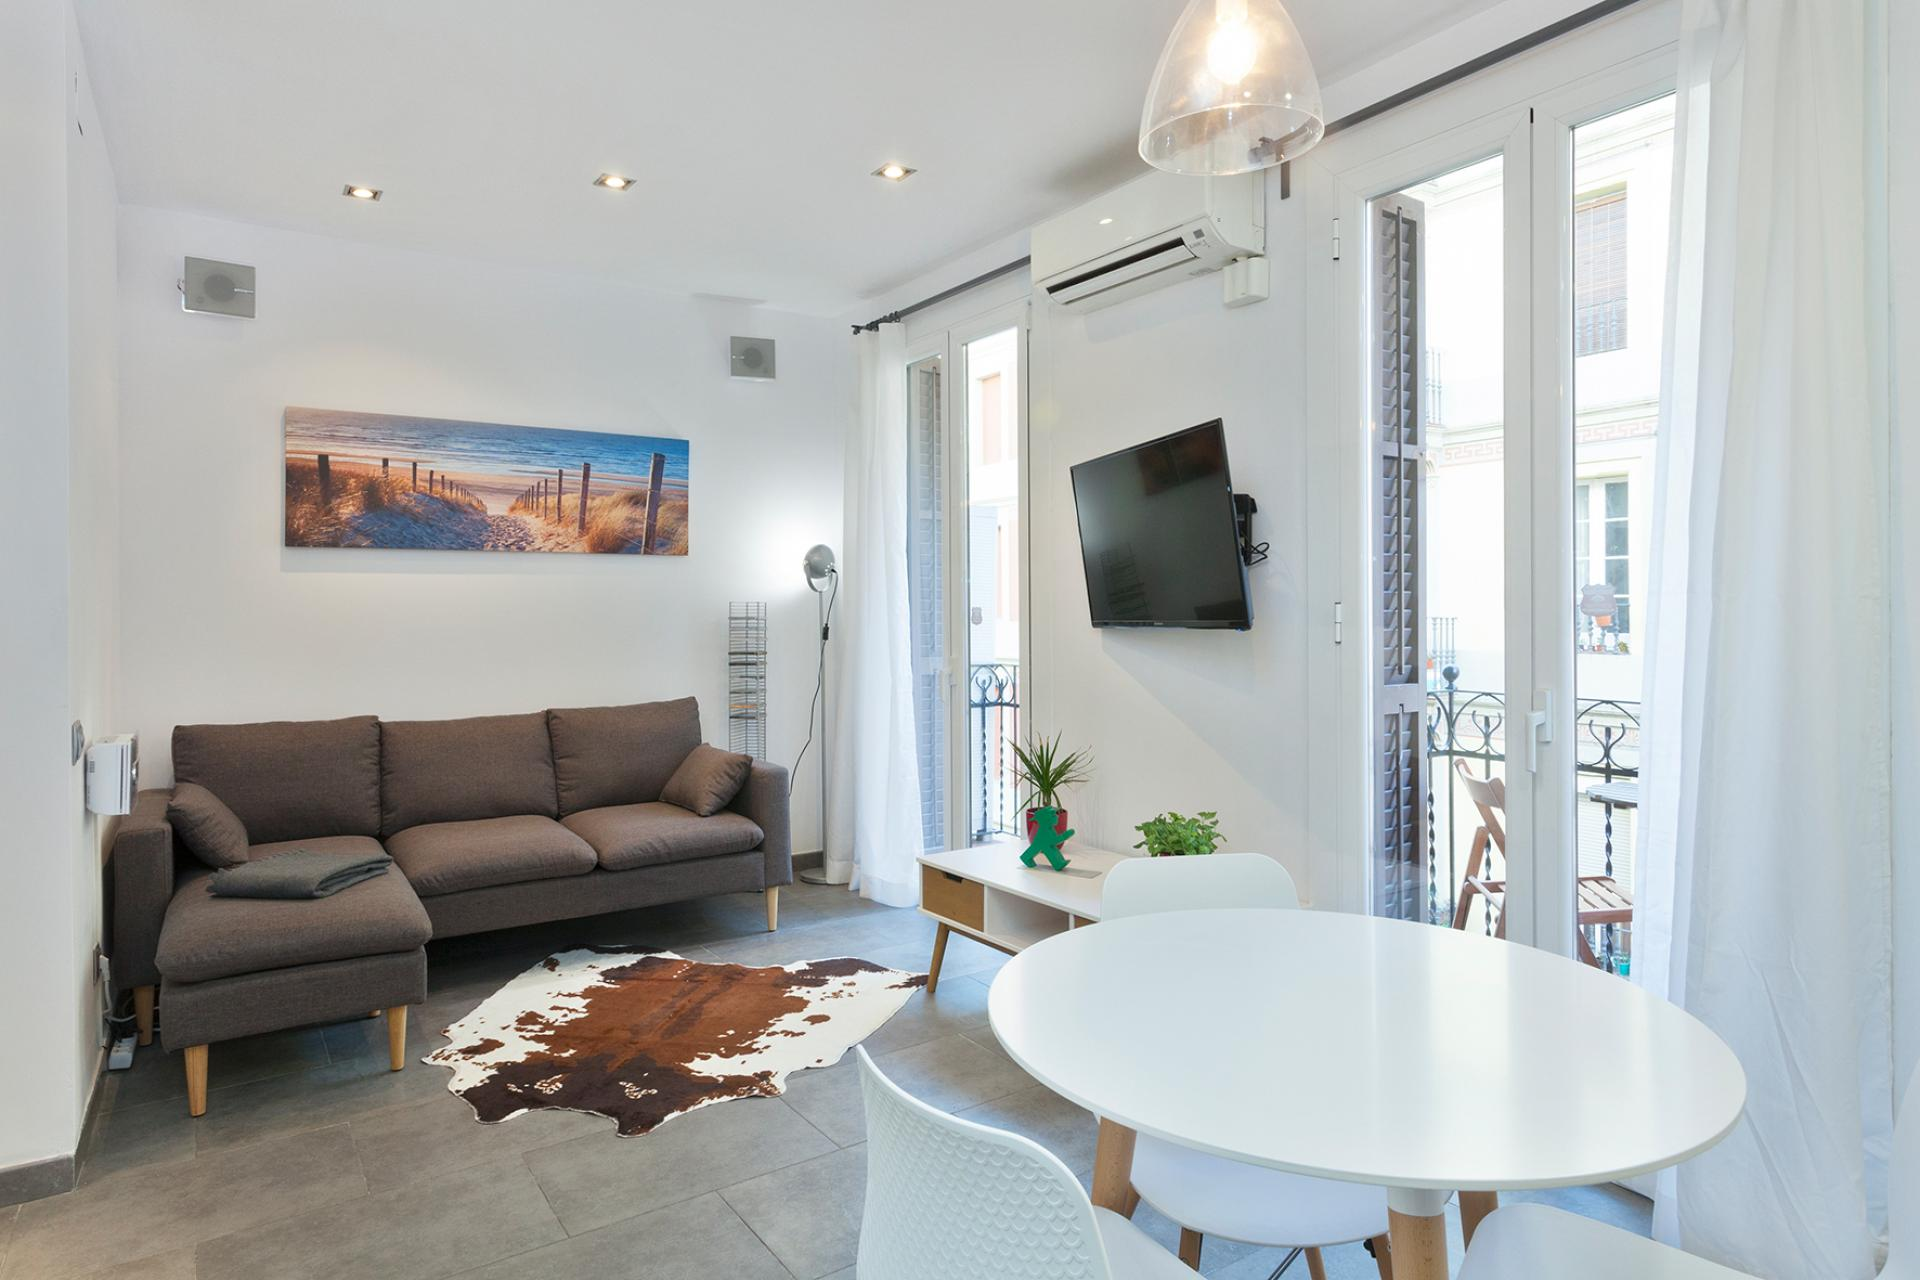 Appartement 2 chambres doubles – Carrer Magalhaes